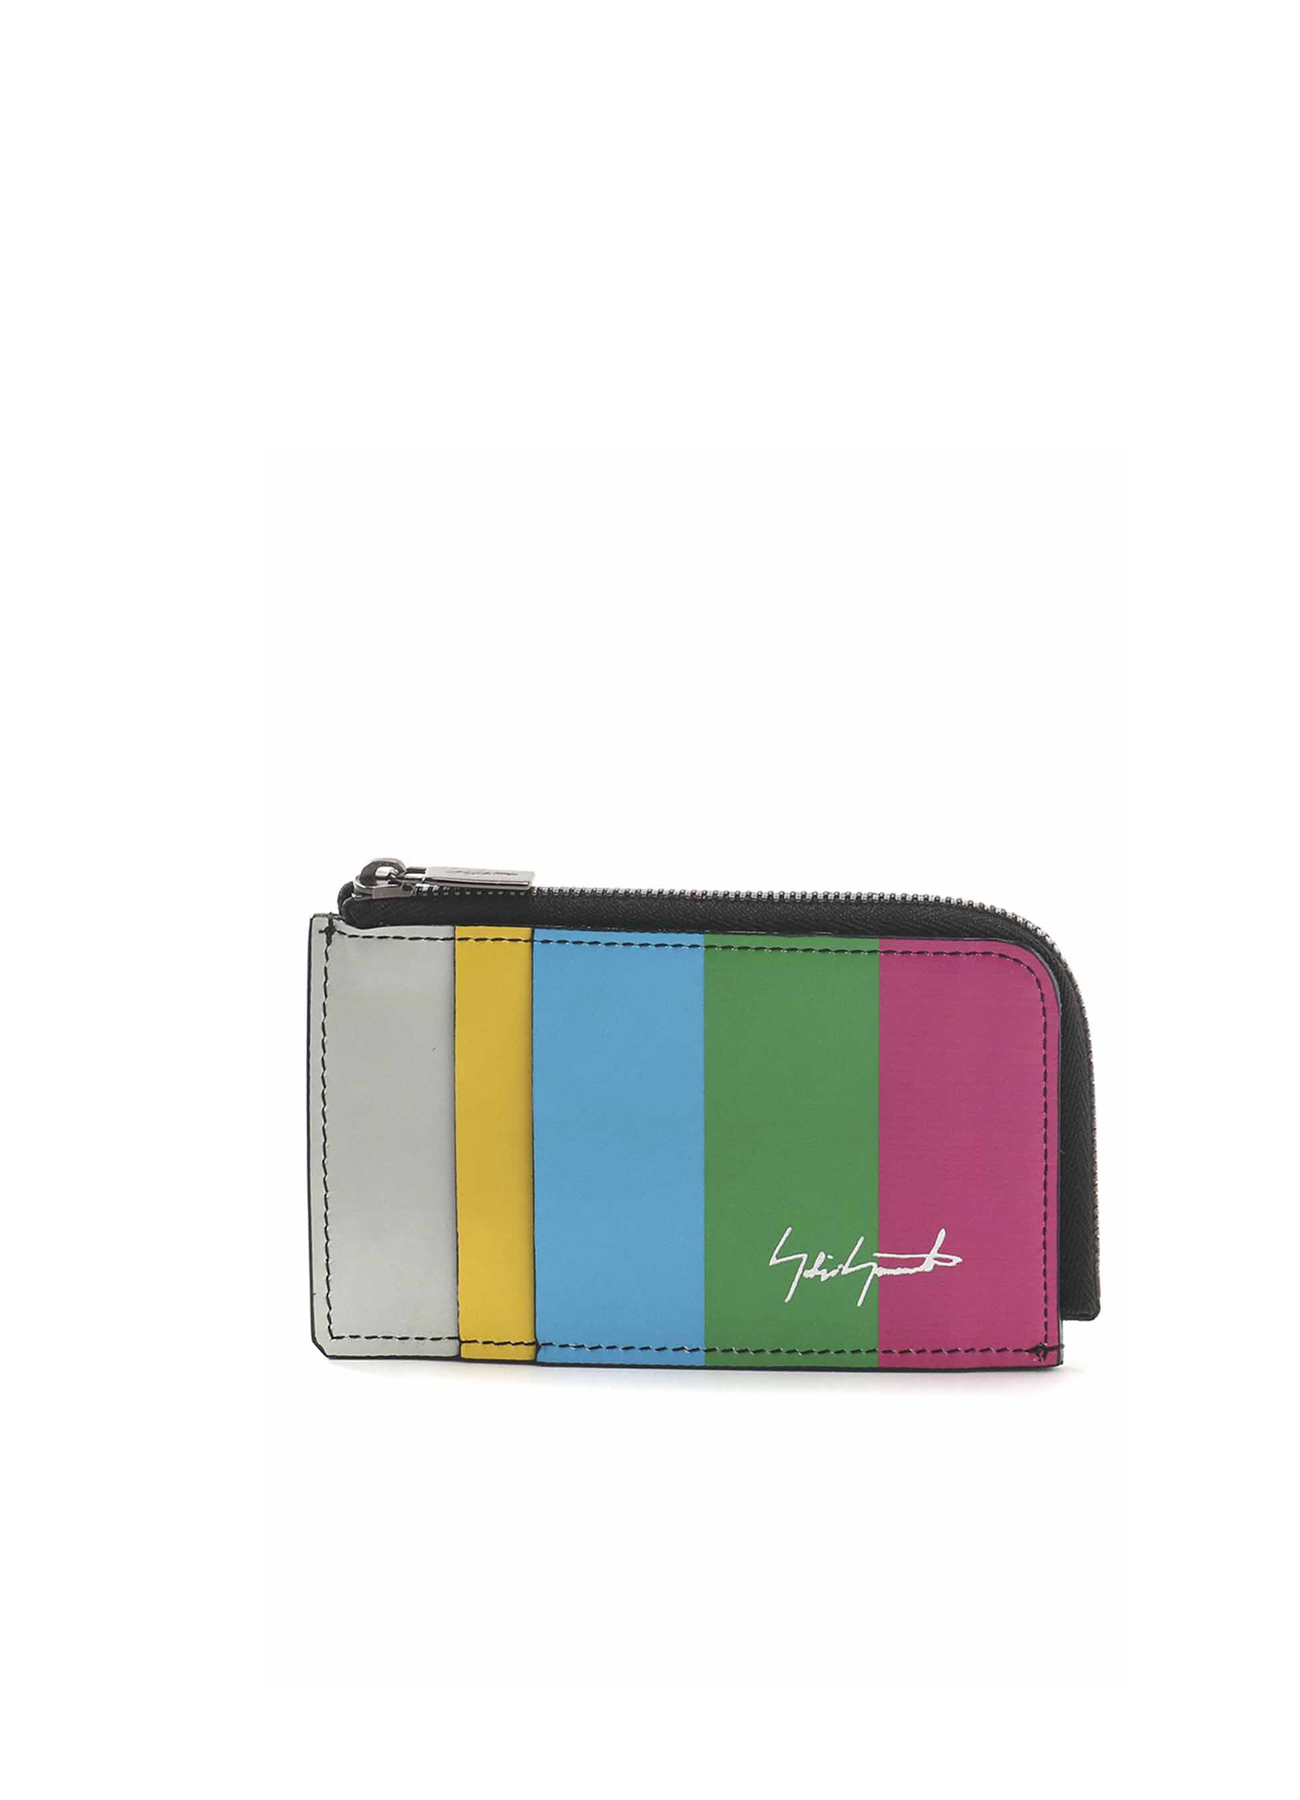 Naoya Inose Collection-Card mini wallet - Romantic depression/Unromantic Euphoria